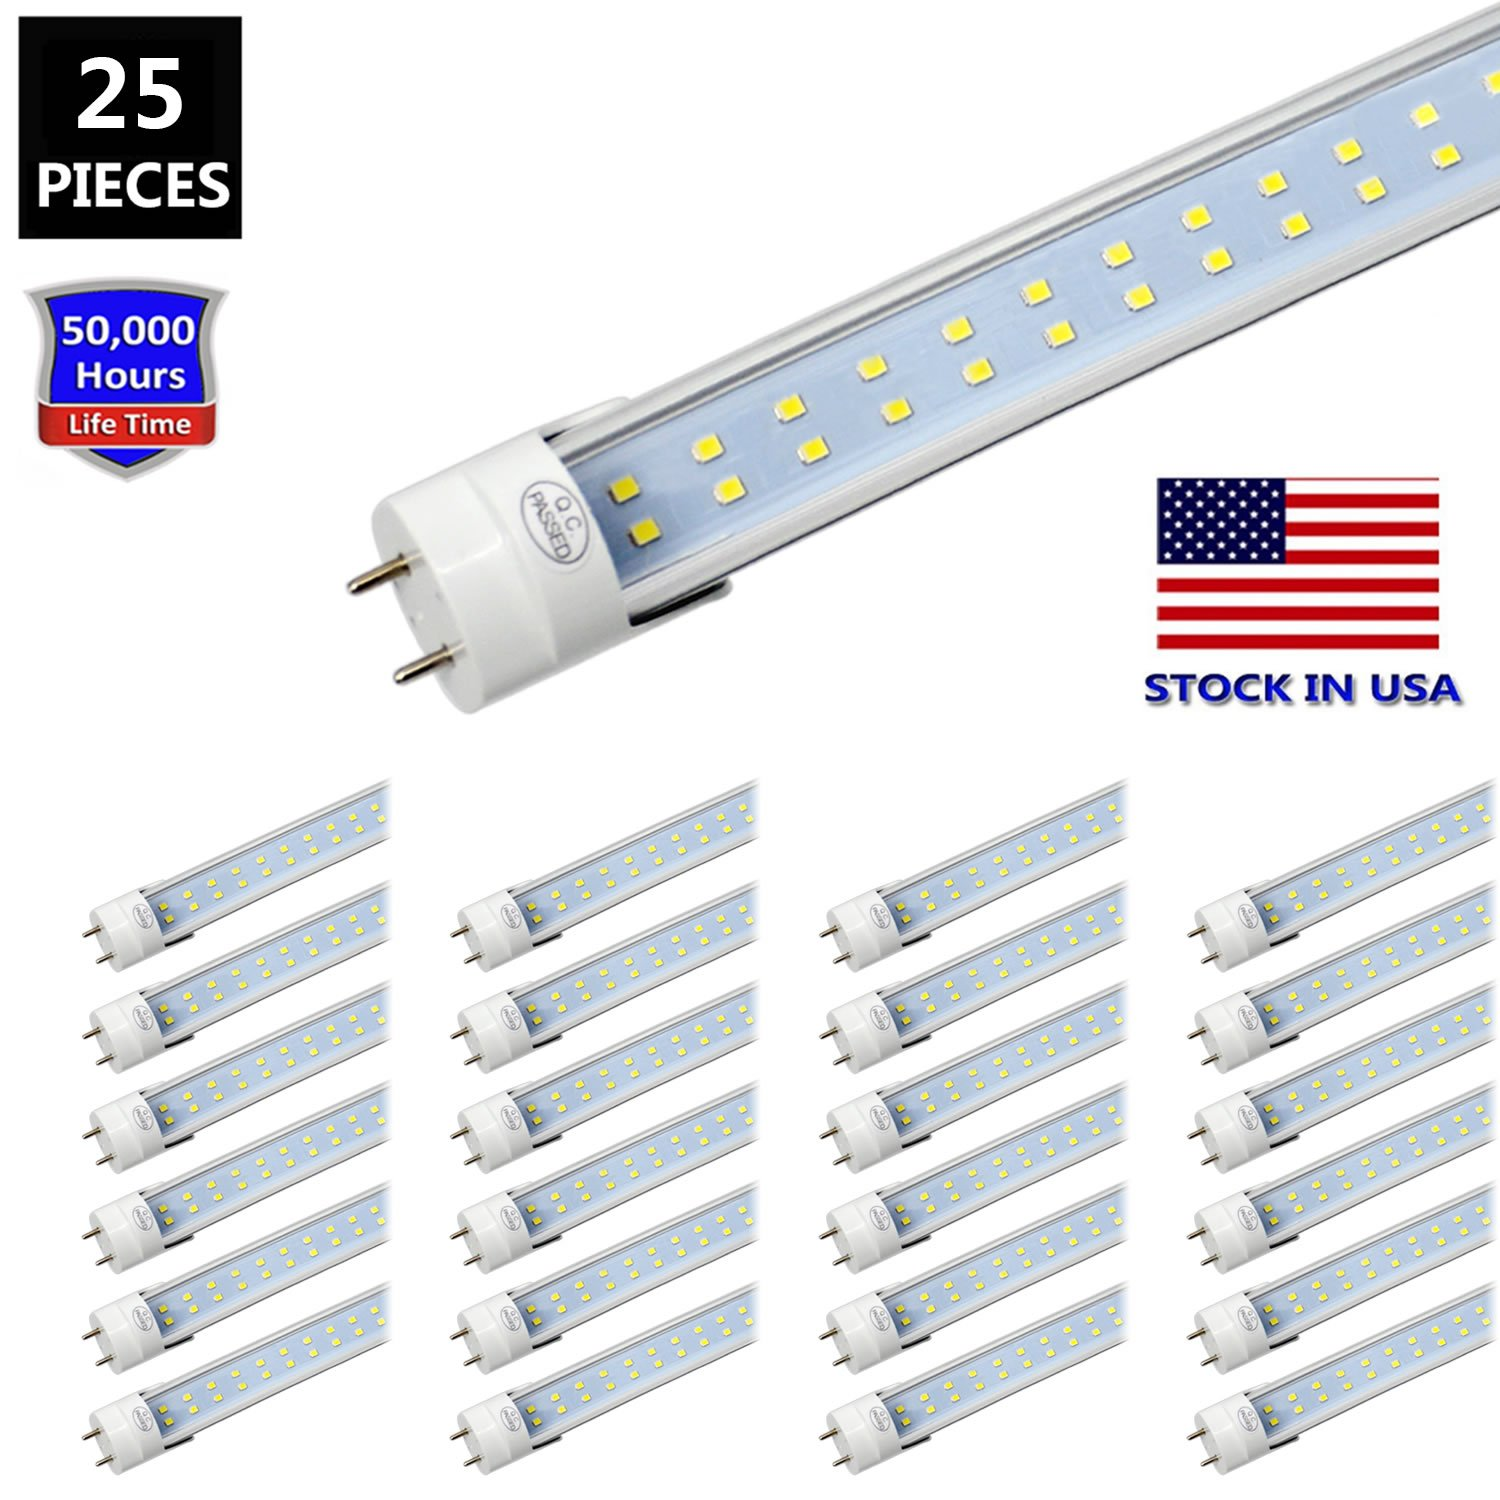 JESLED T8 LED Light Tube, 4FT Two Pins G13 Base, Dual-End Powered, 28W (65W Equivalent), 3080 Lumens, 6000K Cool White, Clear Cover, Dual-Row LED Fluorescent Bulbs, Ballast Removal (25-Pack)